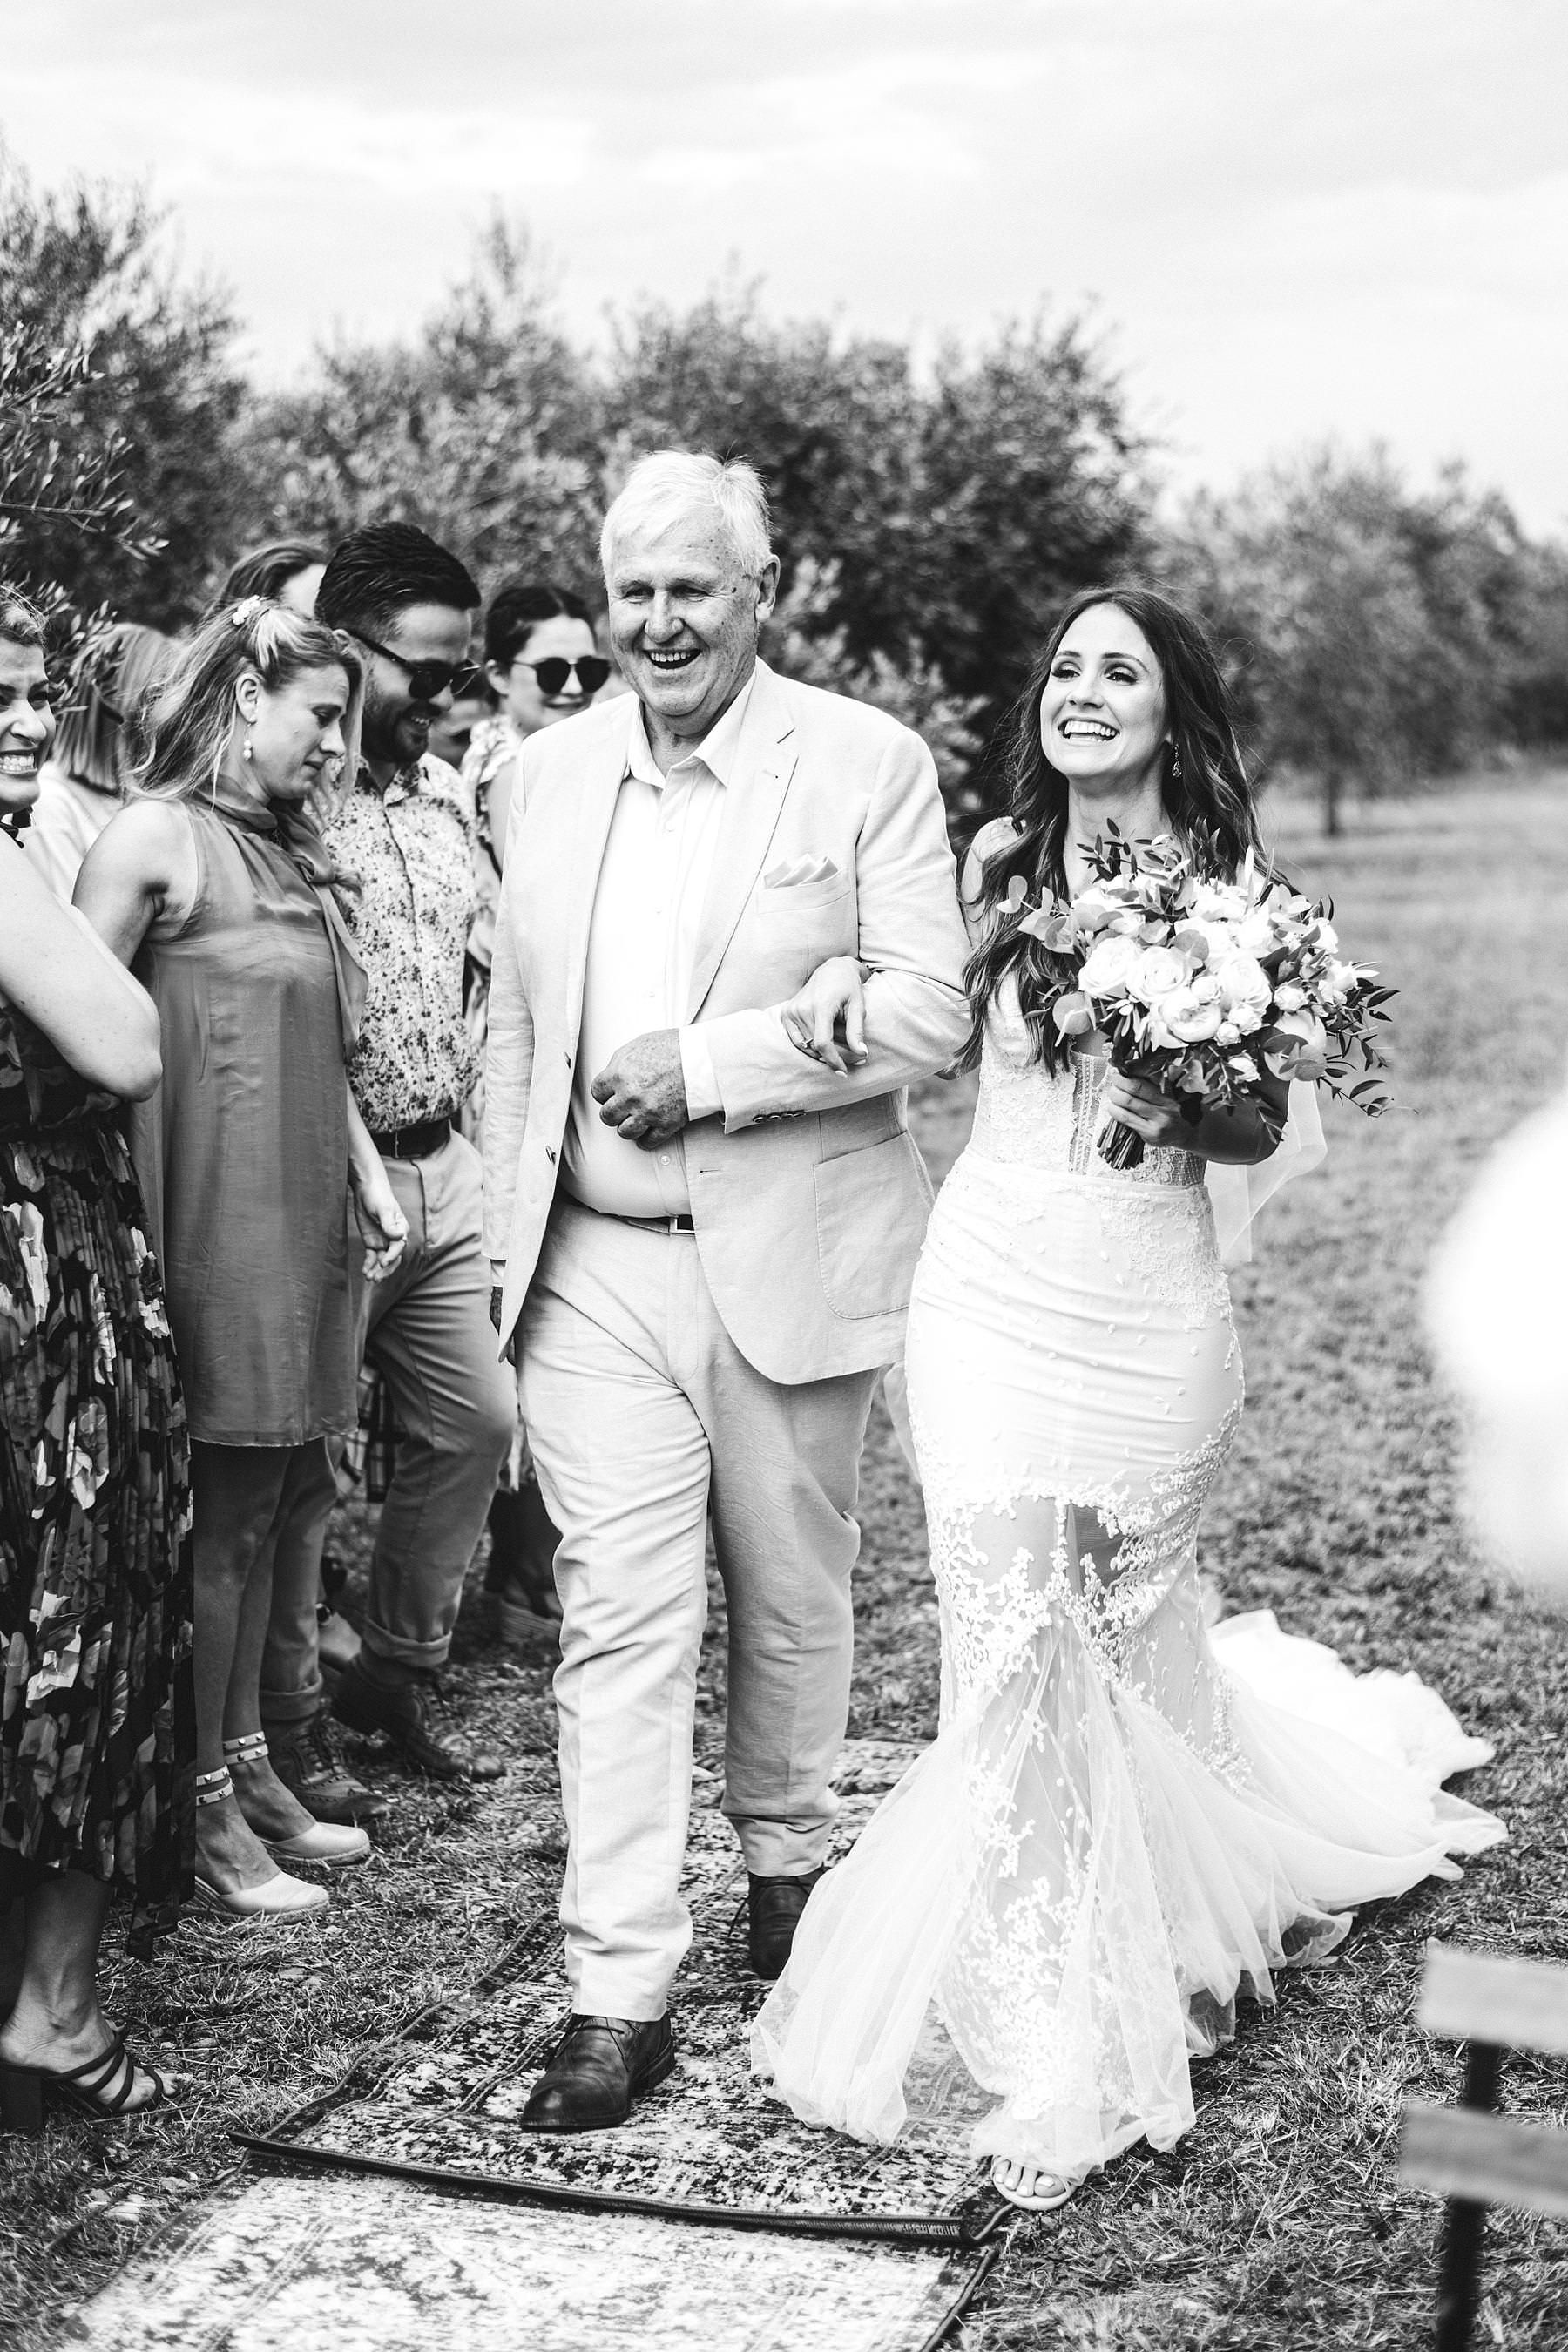 Emotional bride walks down the aisle in the middle of Olive groves of the historical residence of Villa Il Poggiale in the countryside of Chianti